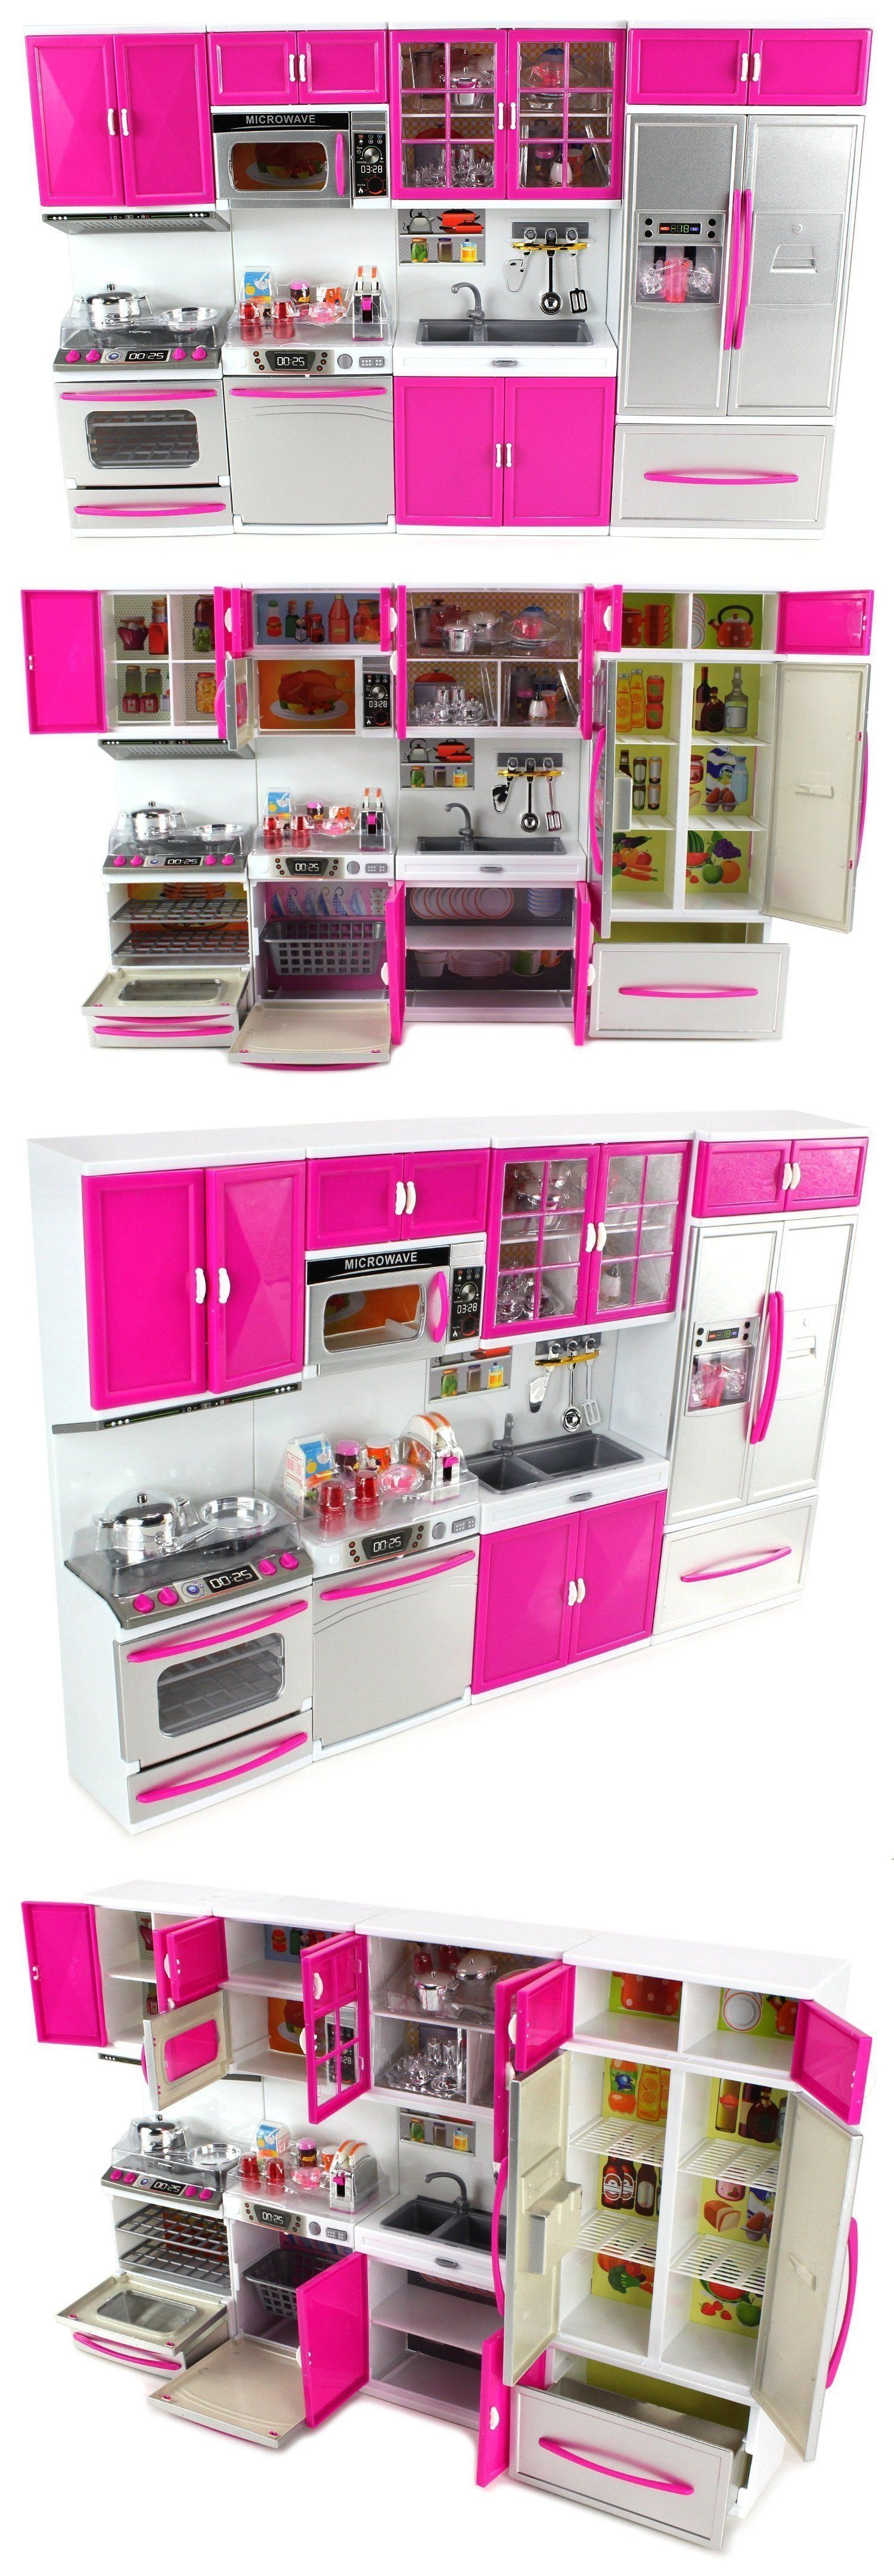 Toys for kids kitchen set  Kitchens  Envo Toys Large Kitchen Play Set Toy Pretend Play